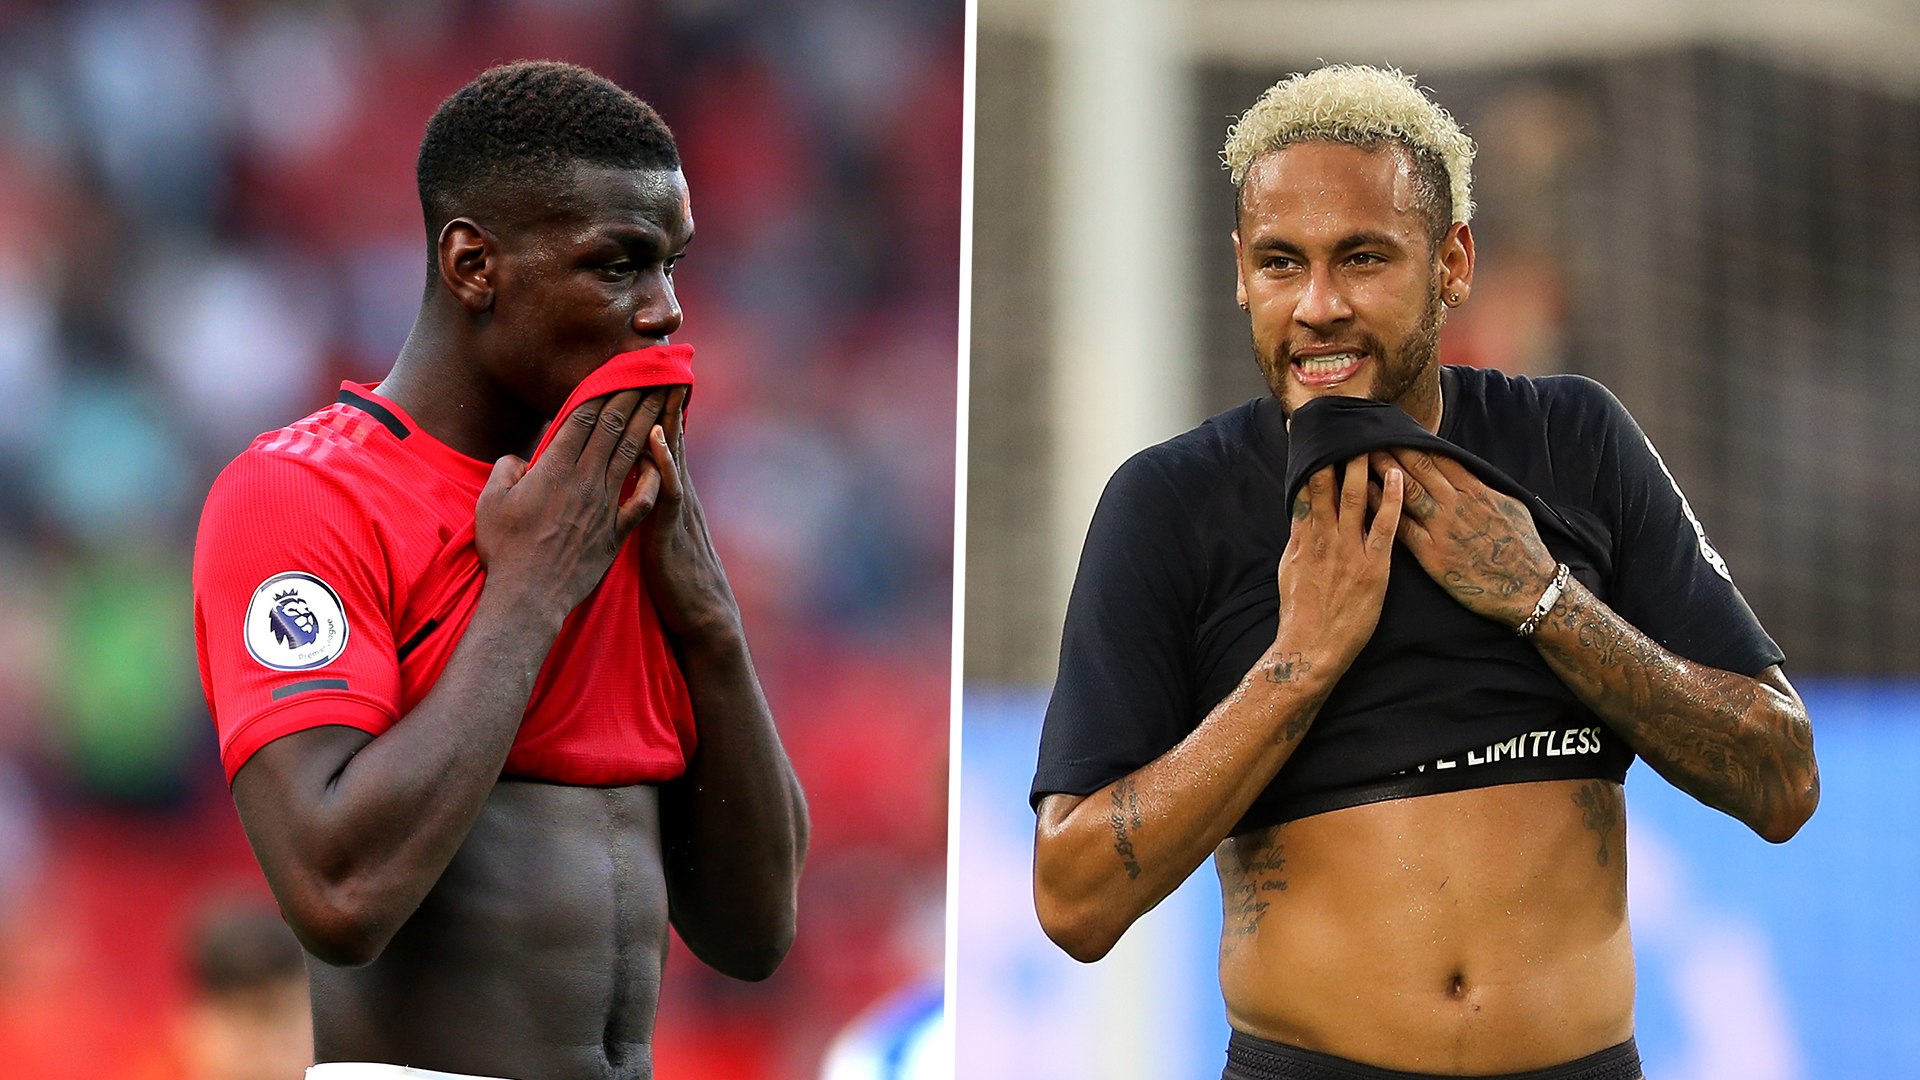 Neymar and Pogba fall out of top 25 players in the world